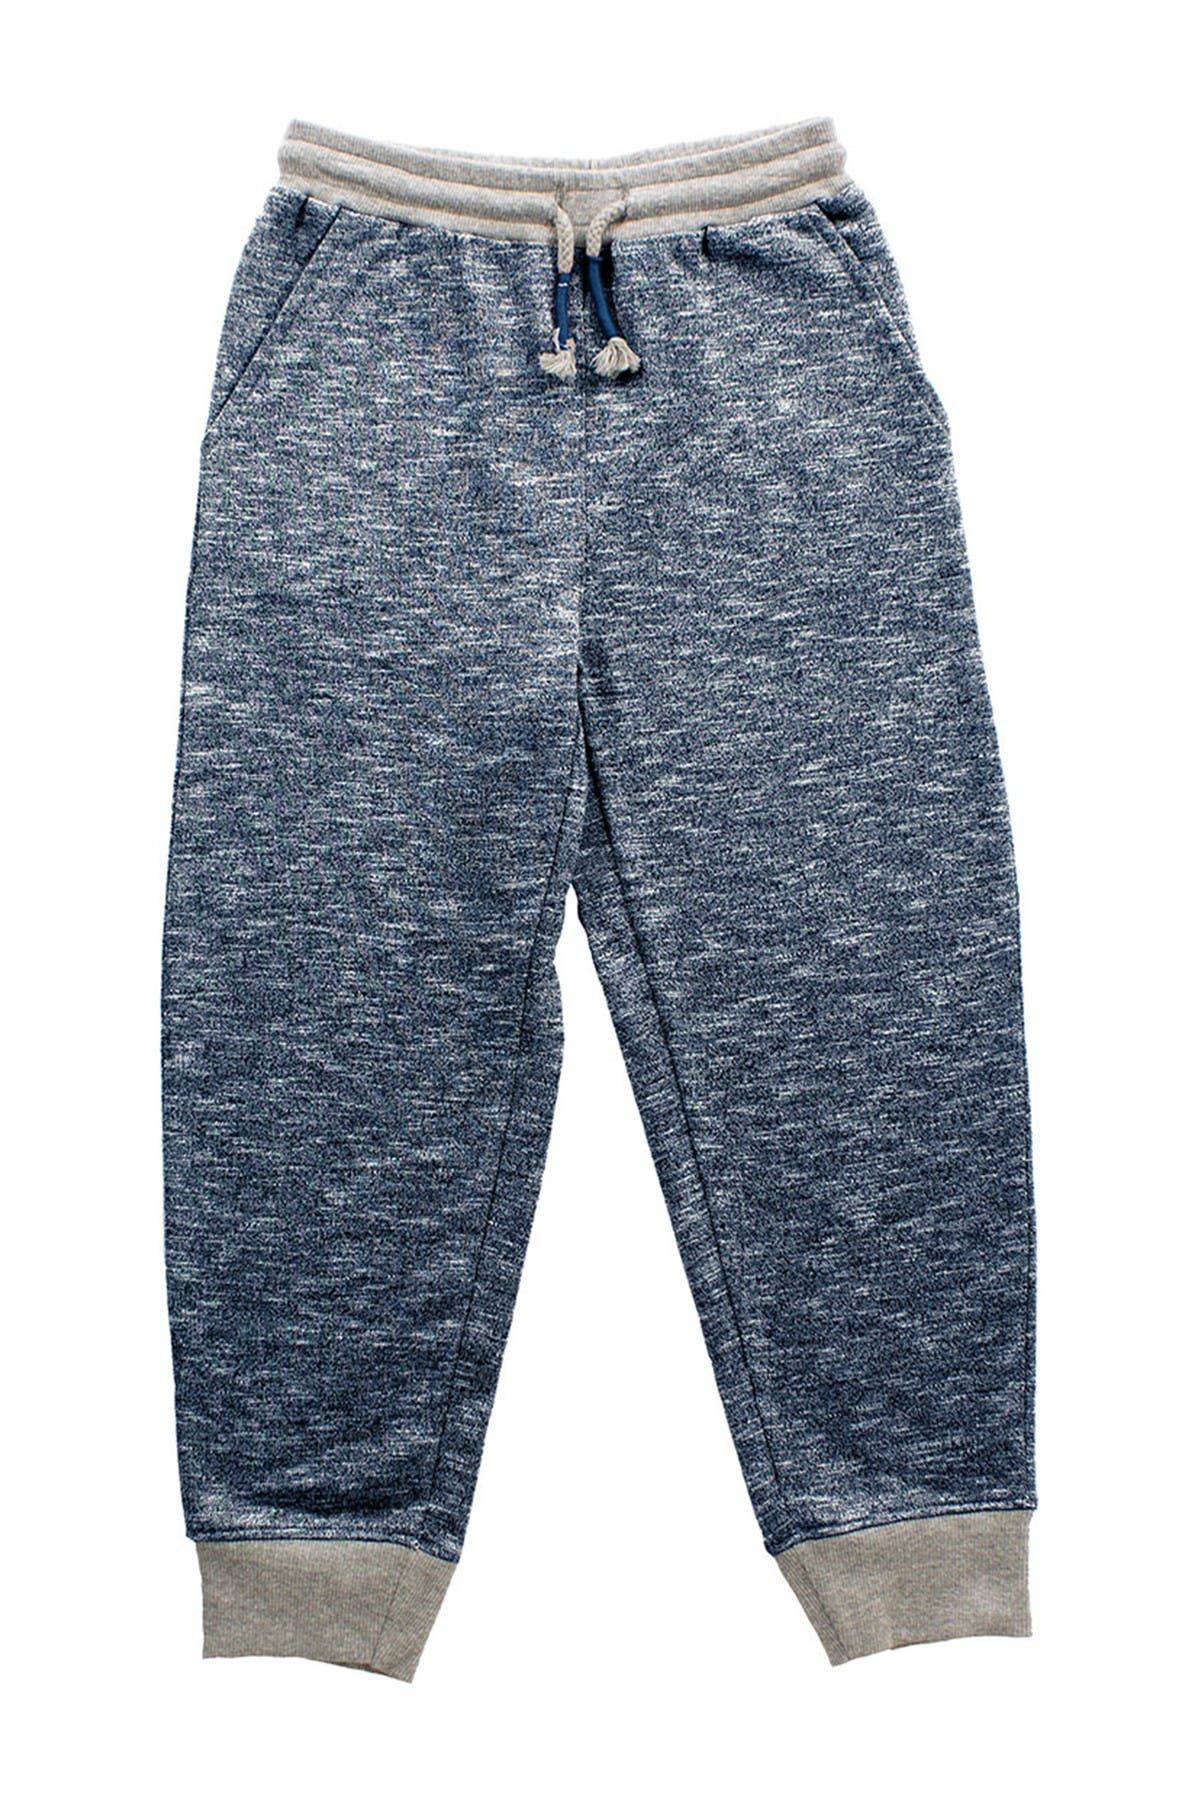 Image of BEAR CAMP Marled Knit Jogger Pants